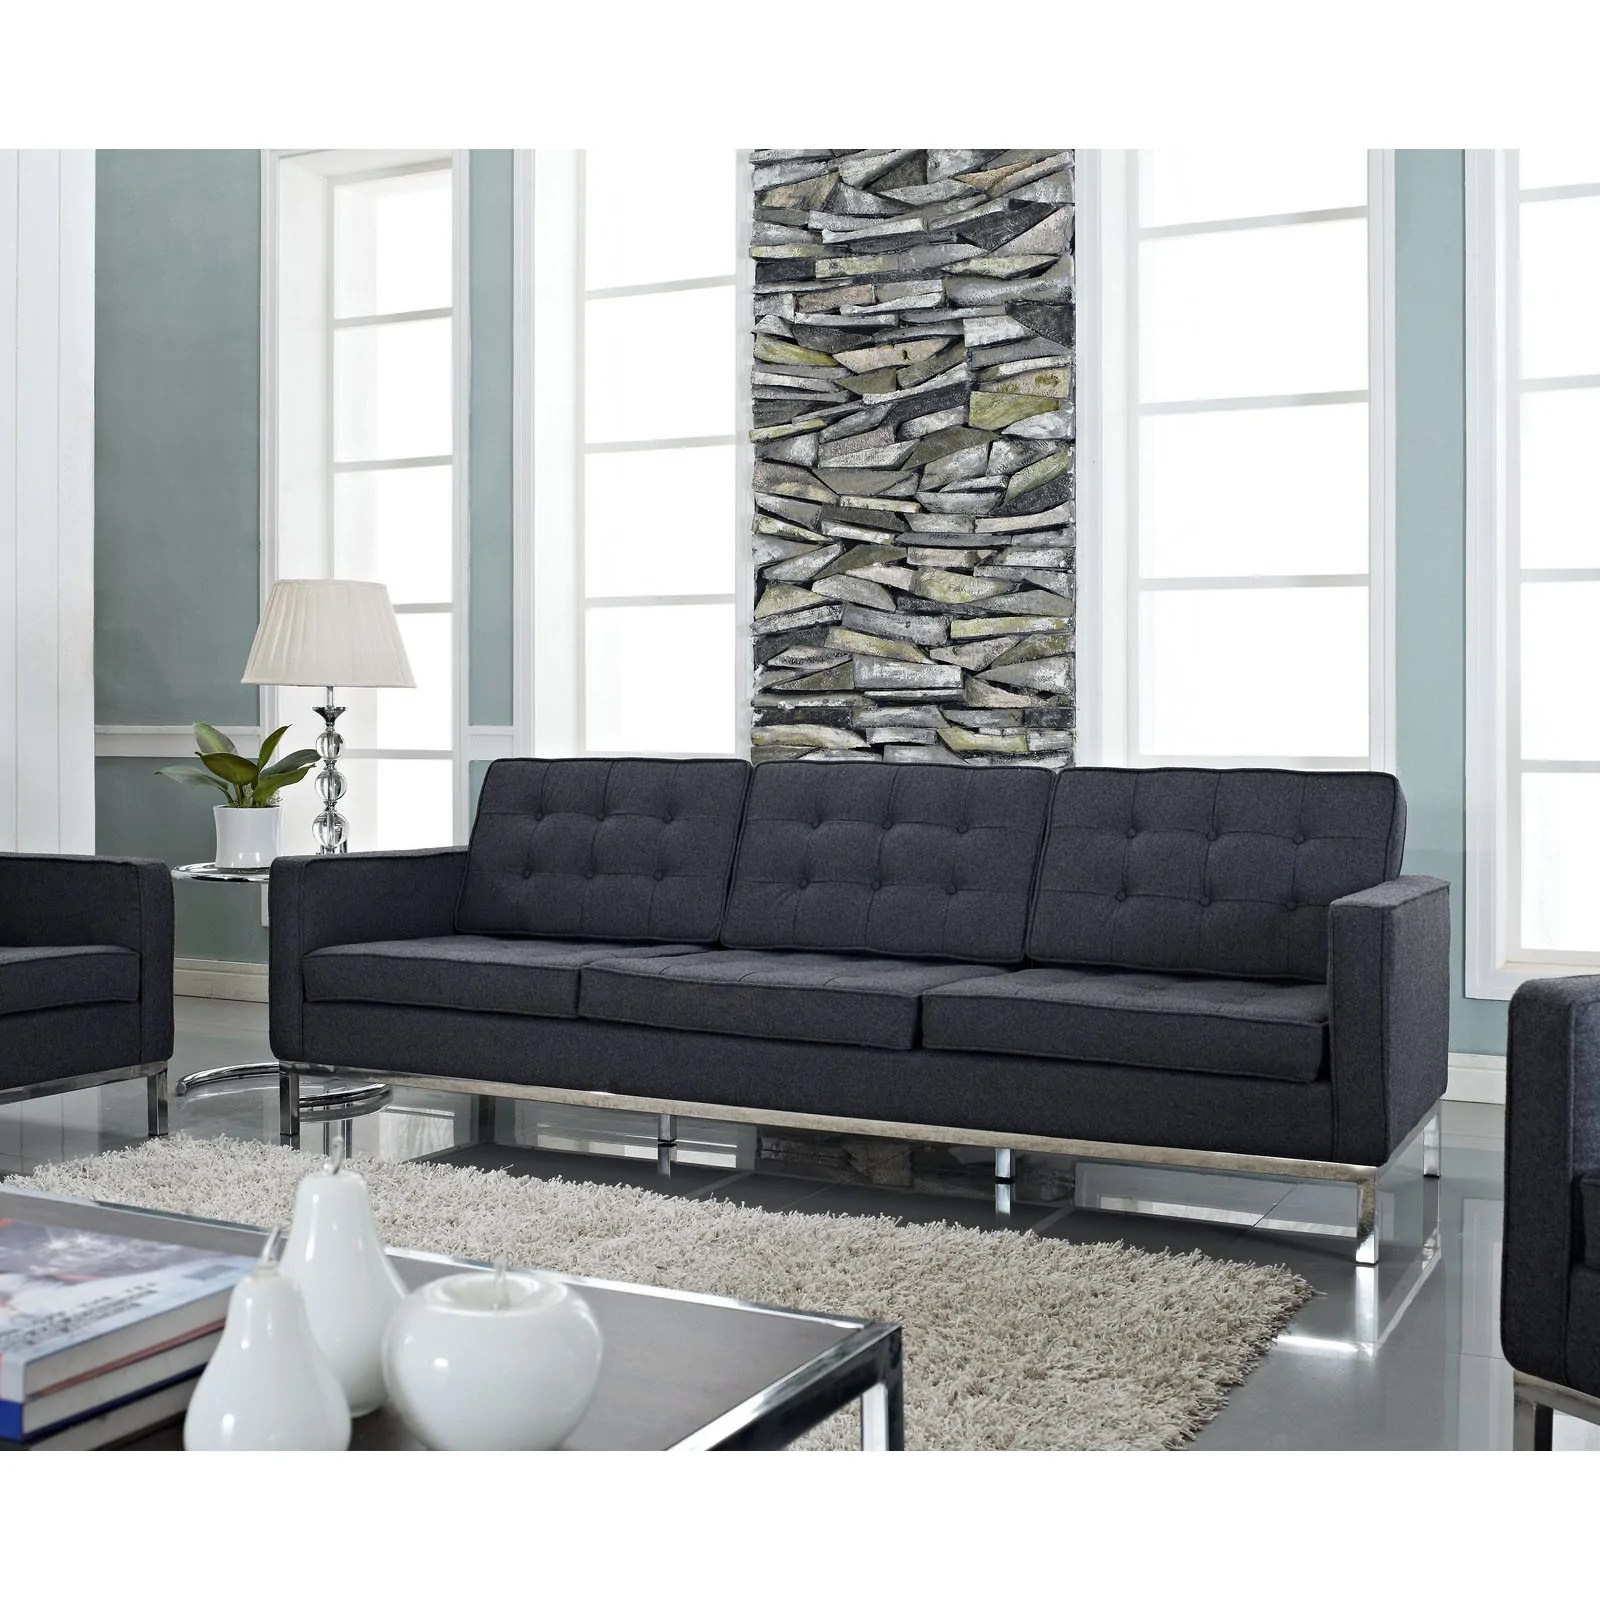 Florence Knoll Sessel Florence Knoll Wool Style Sofa Free Nationwide Shipping